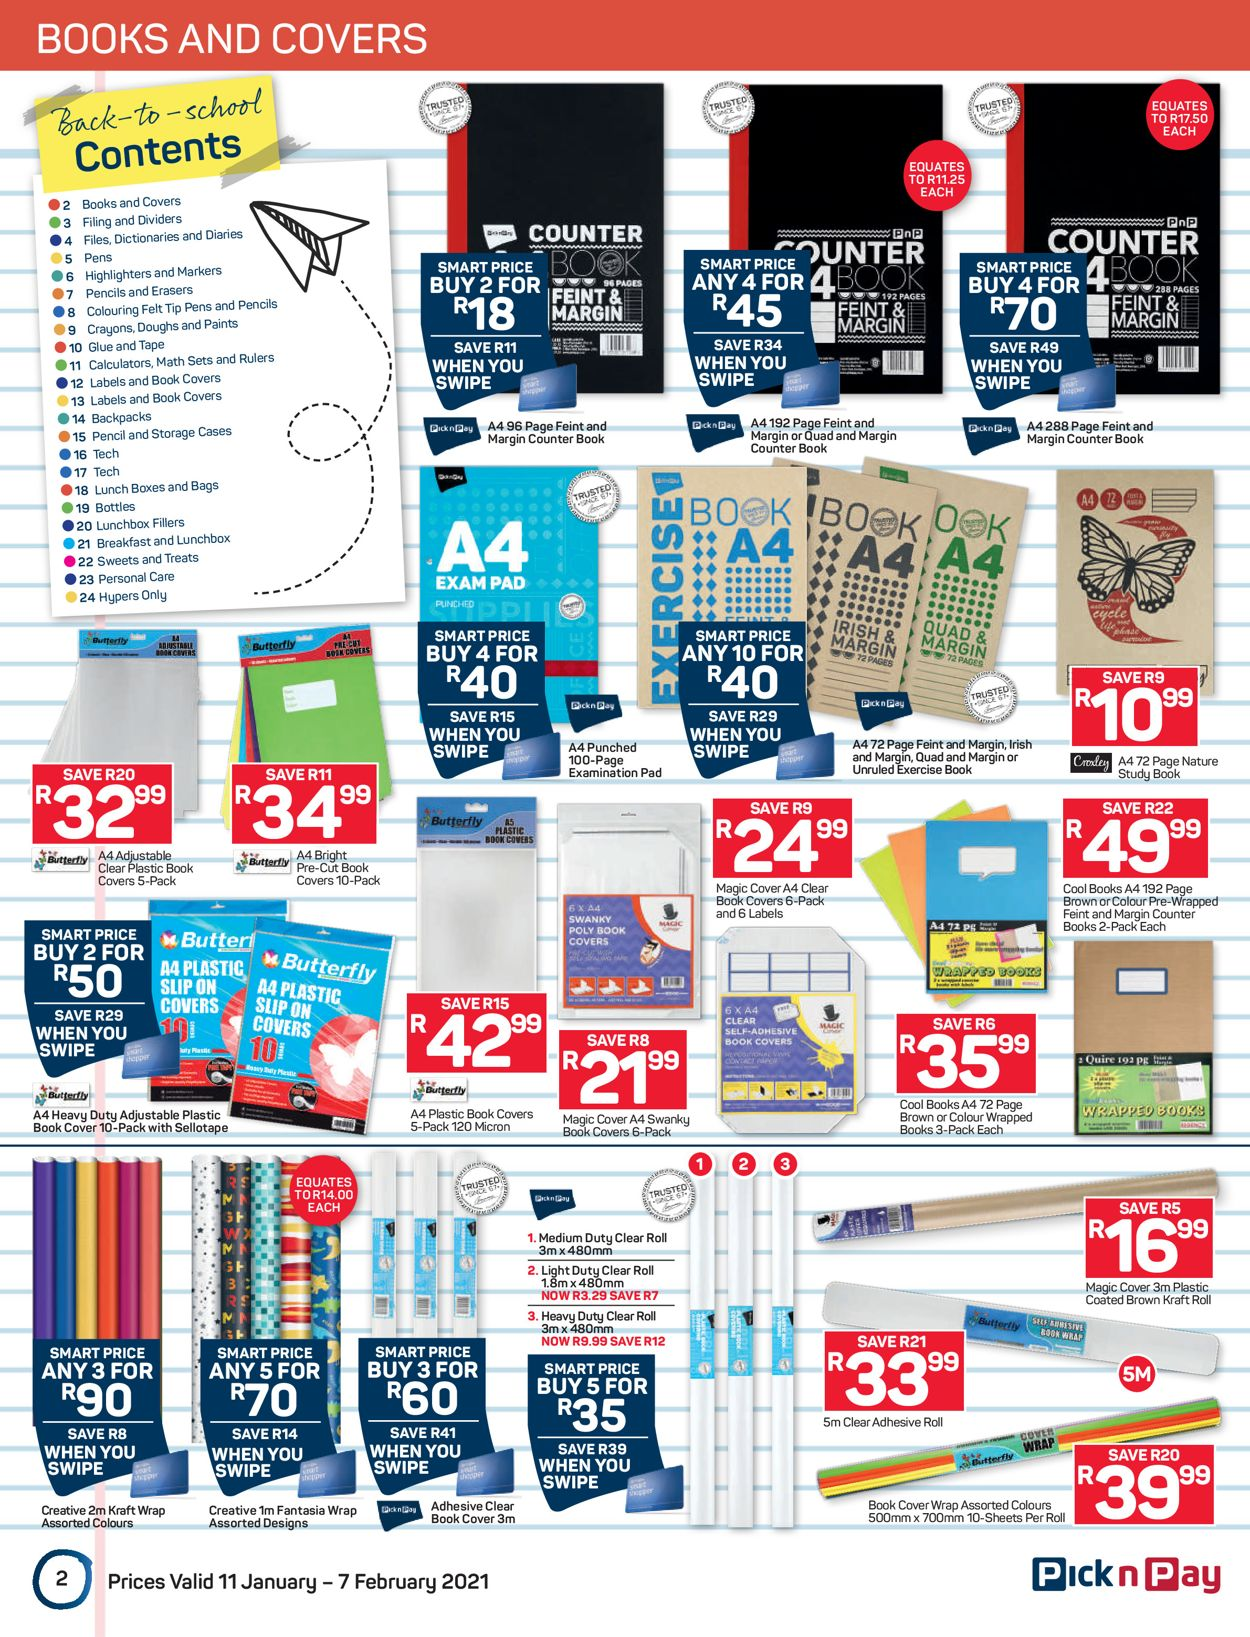 Pick n Pay Back to School 2021 Catalogue - 2021/01/11-2021/02/07 (Page 2)